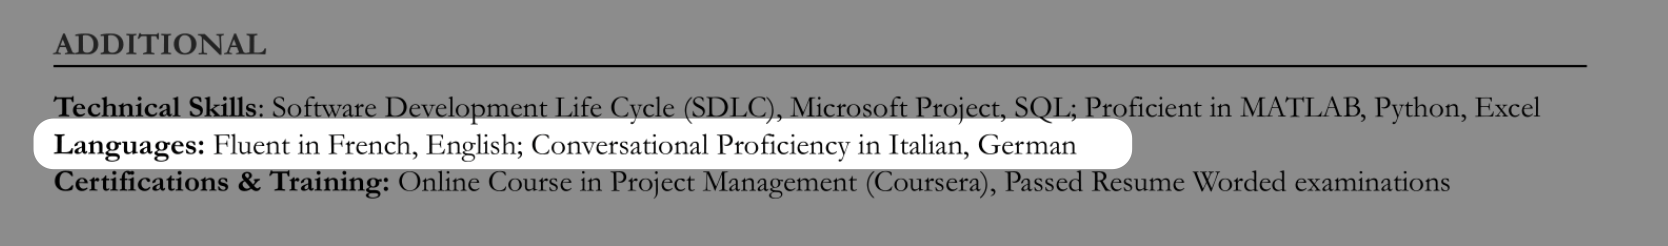 """If the job listing doesn't have a language proficiency requirement, you can opt to list your language skills in an """"Additional"""" section."""